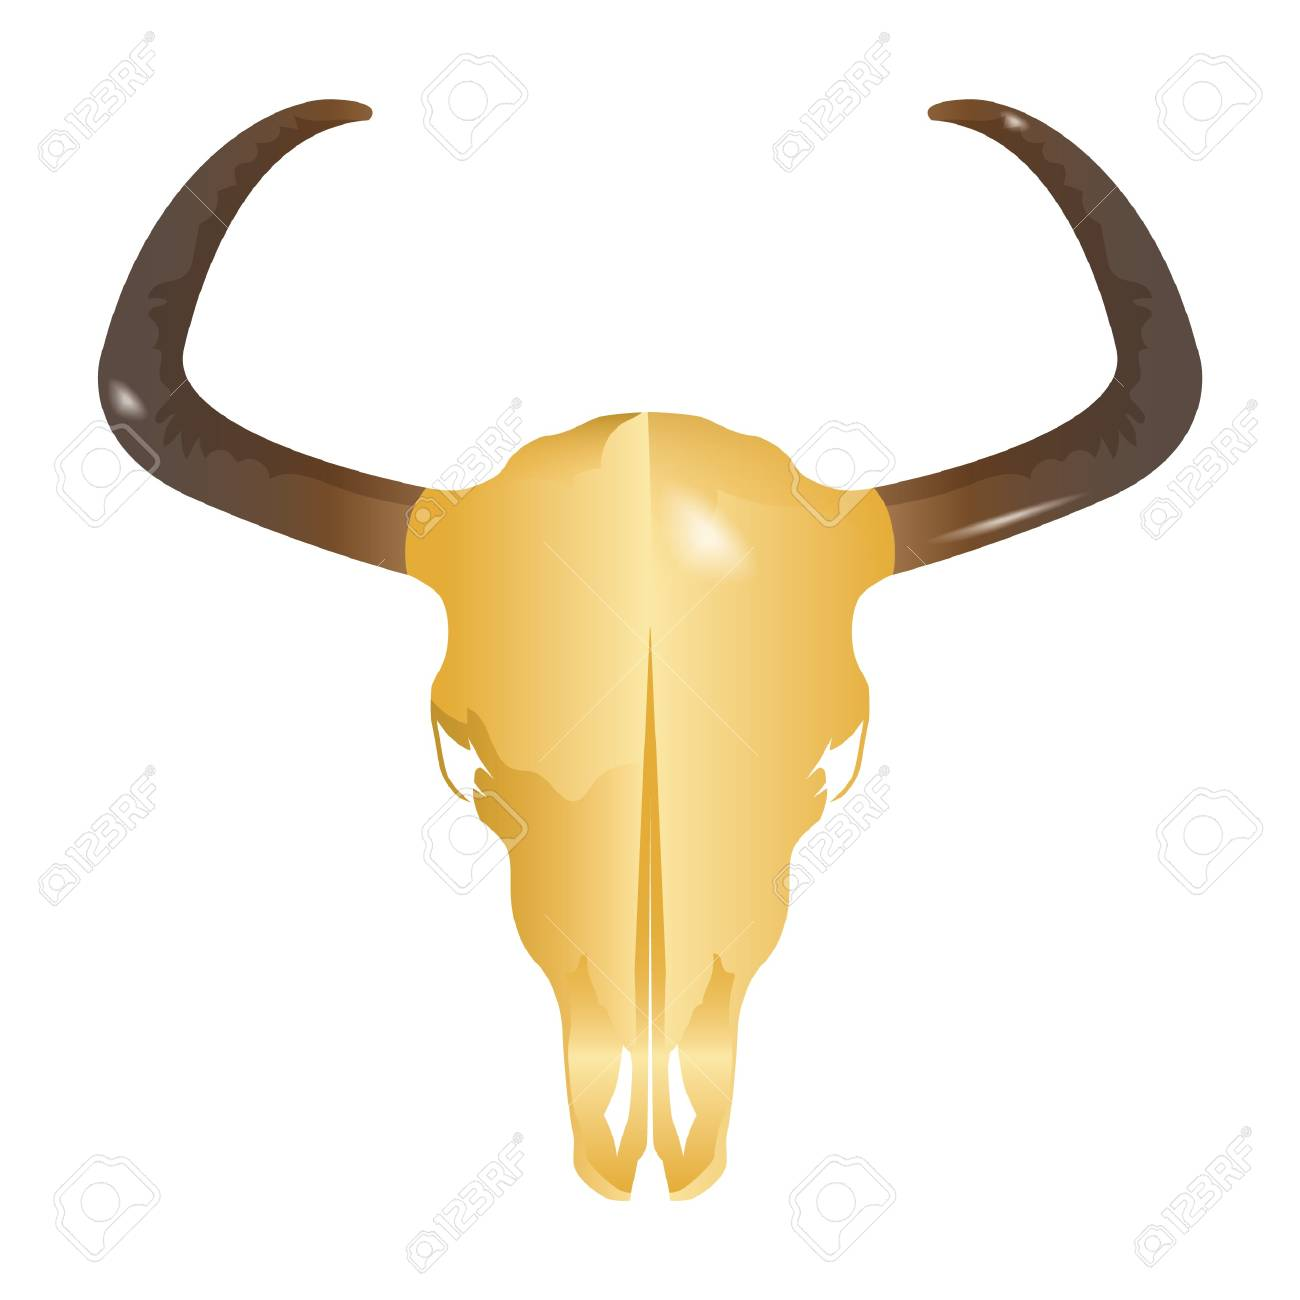 Mexican Bull Head Decoration Royalty Free Cliparts, Vectors, And ...